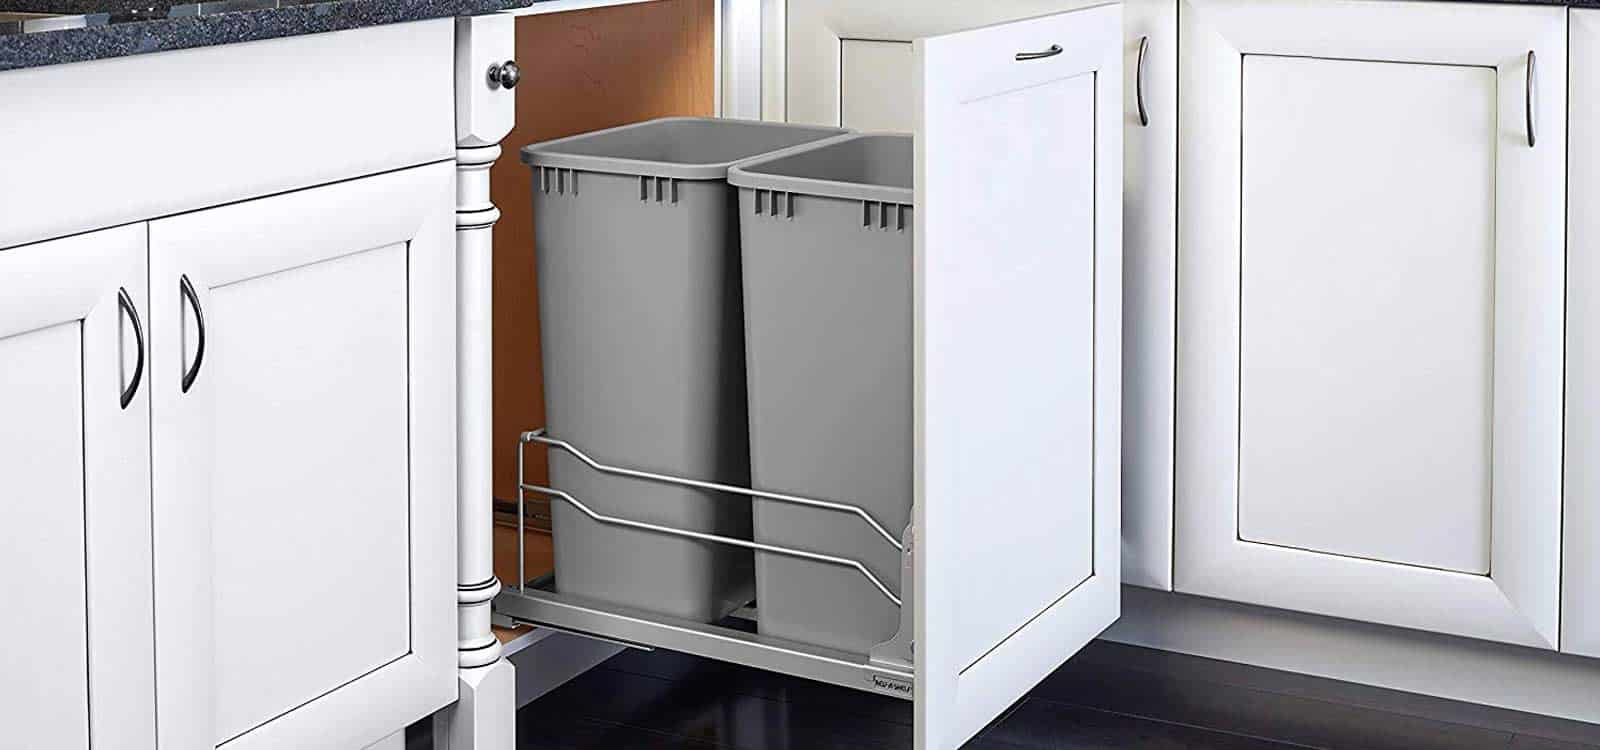 under-sink-pull-out-trash-can-kitchen-header